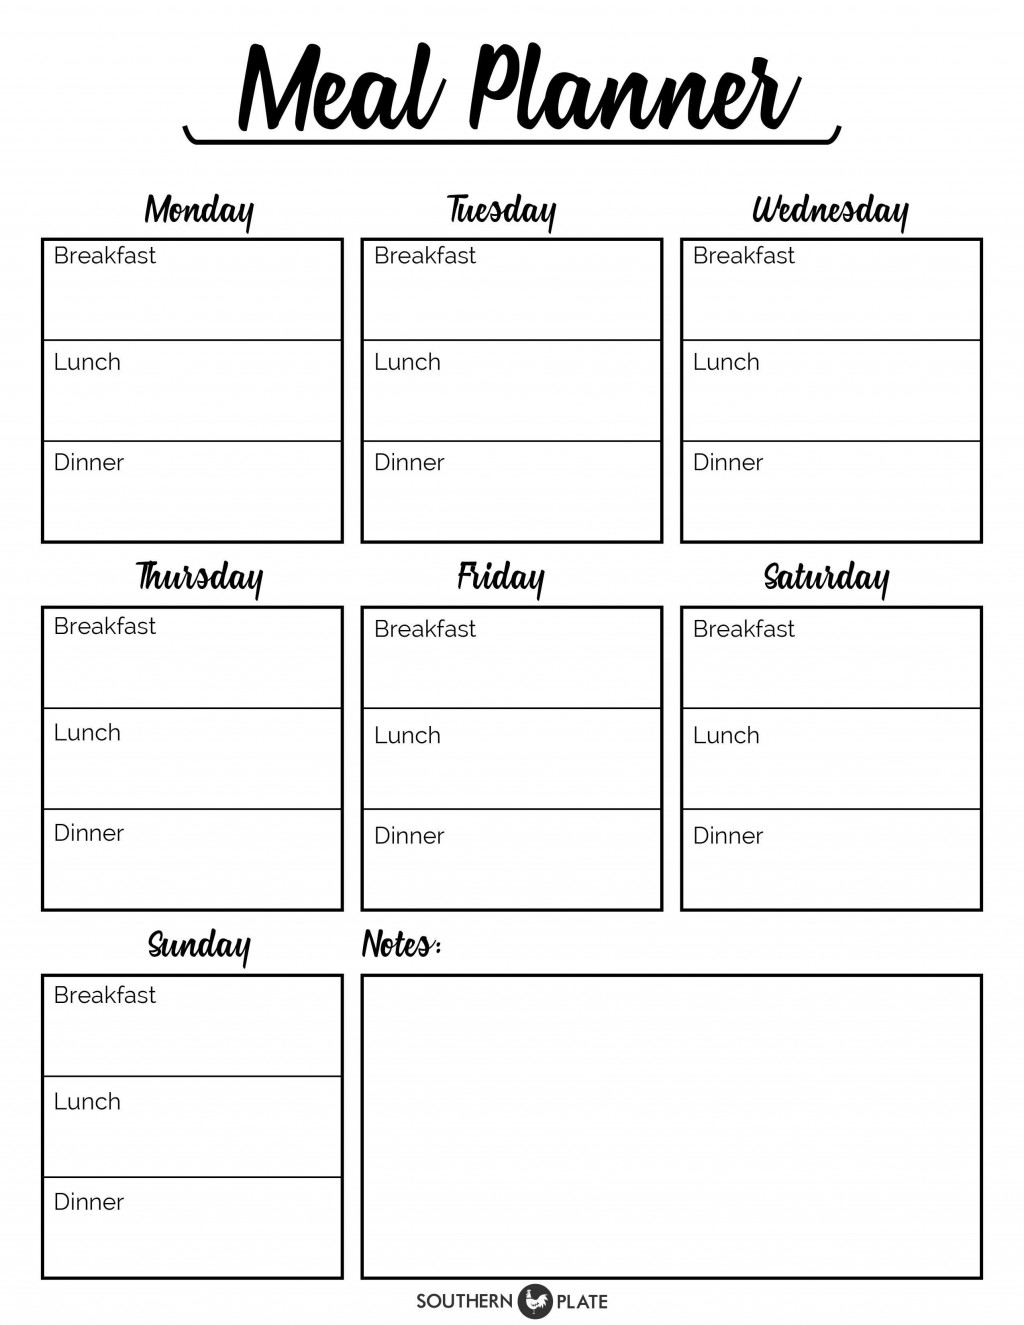 002 Rare Free Meal Planner Template Pdf Image  Weekly With Grocery List MonthlyLarge